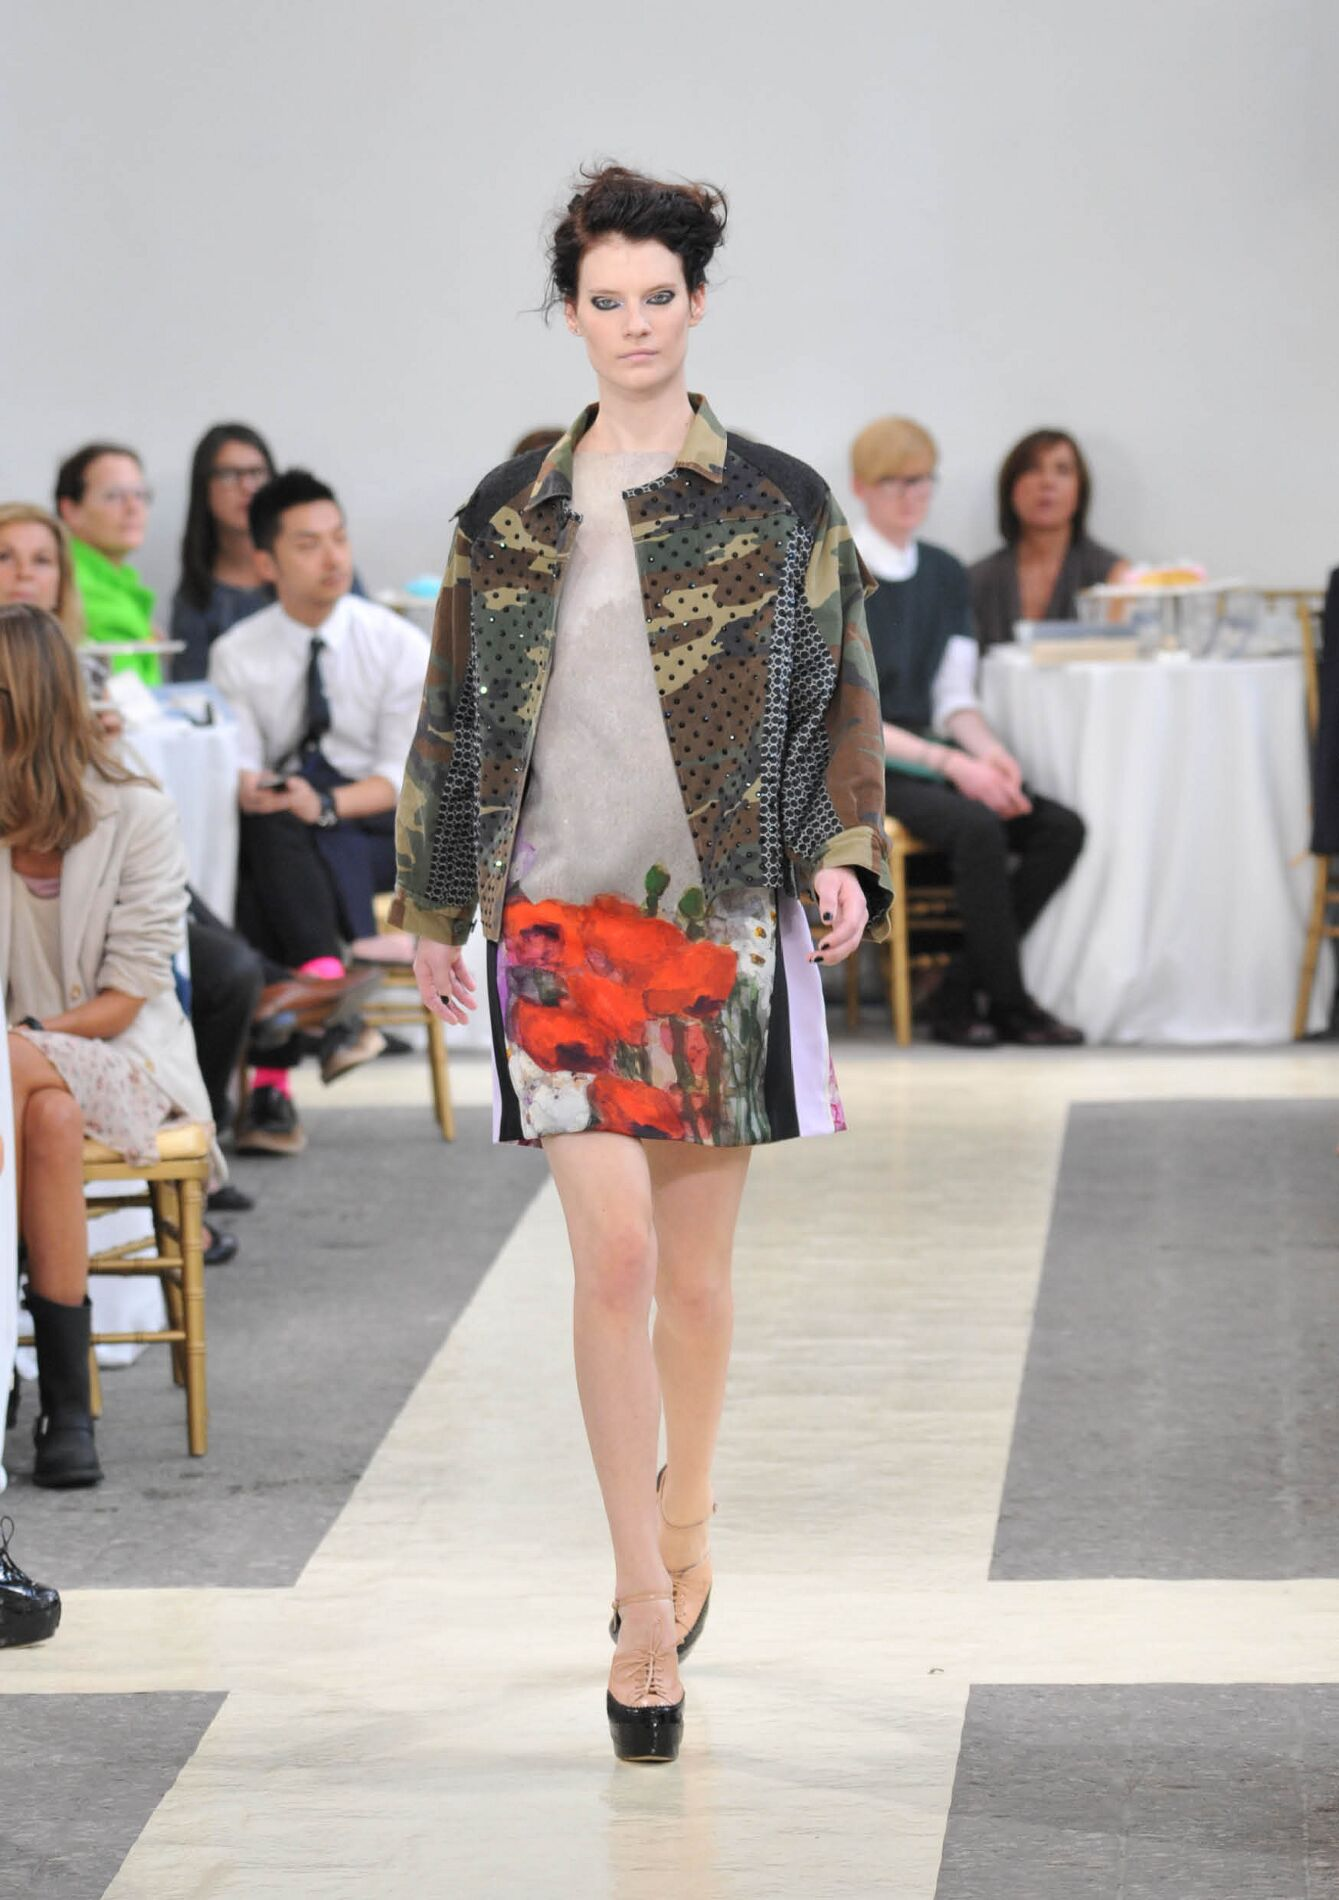 Antonio Marras Fashion Show Summer 2013 Model